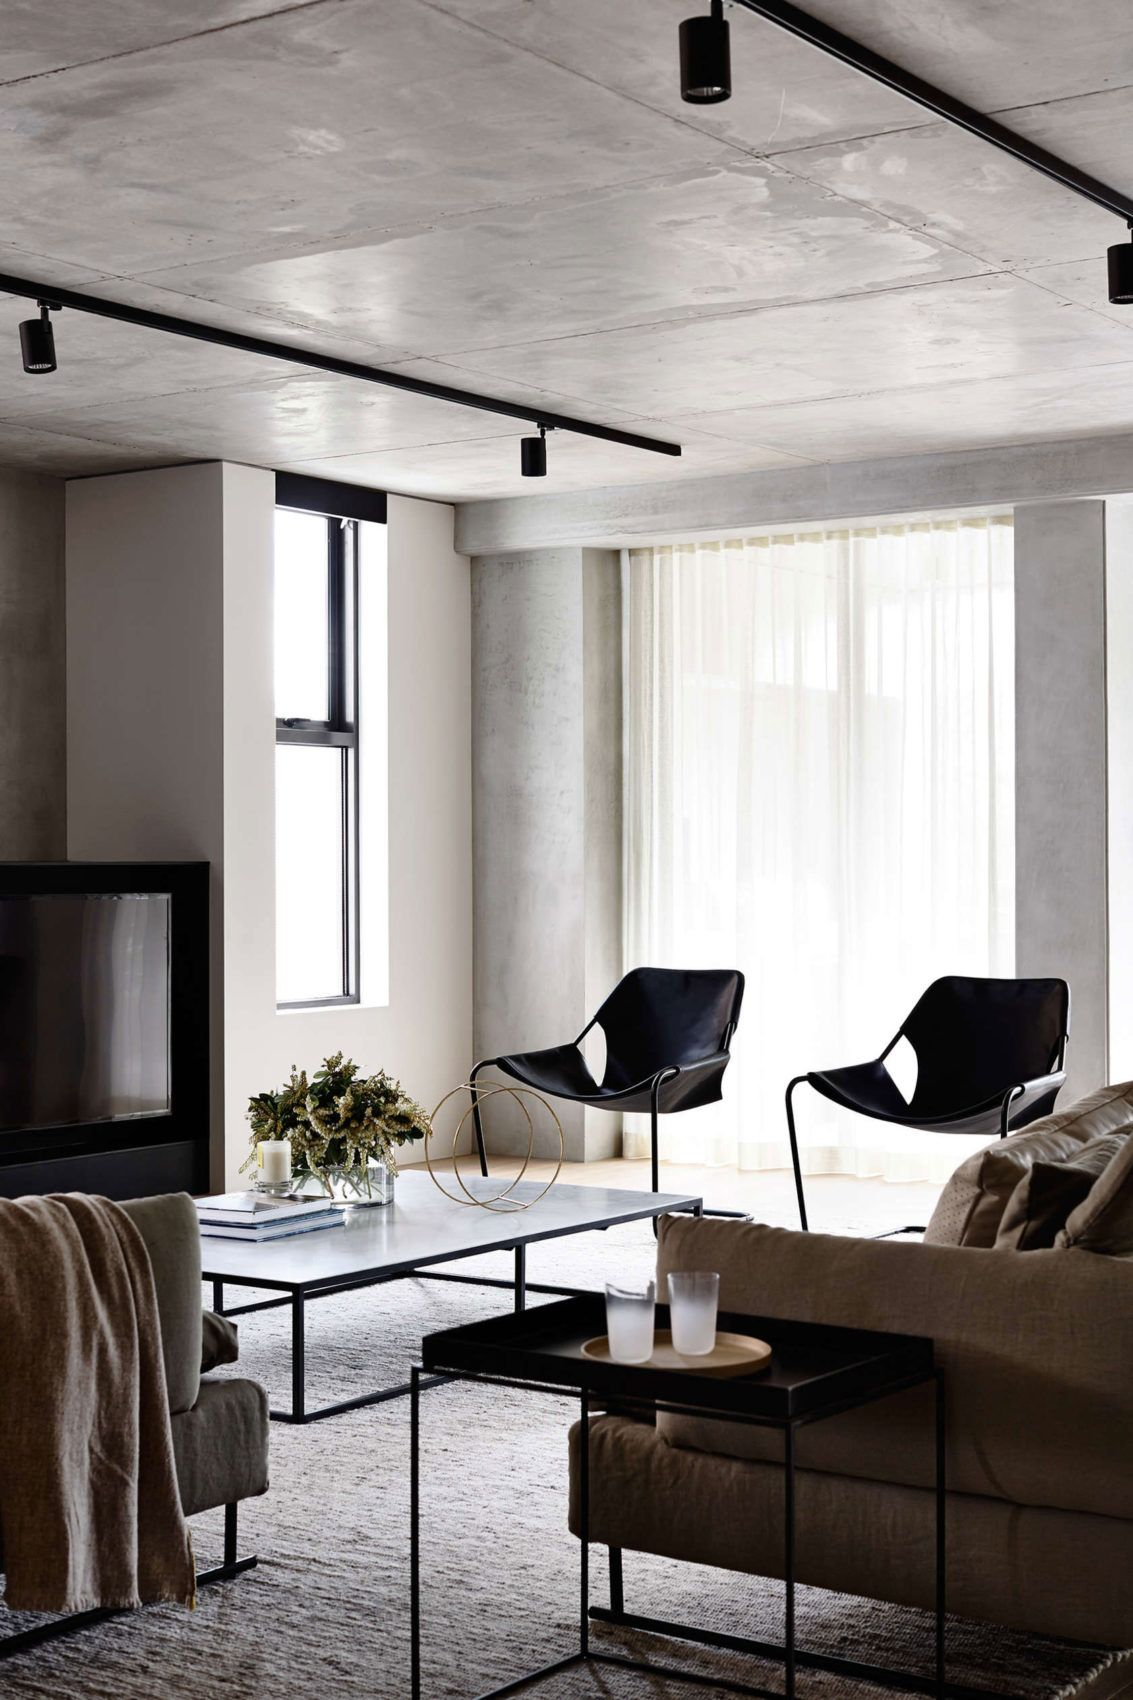 126 Walsh Street by Carr Design Group